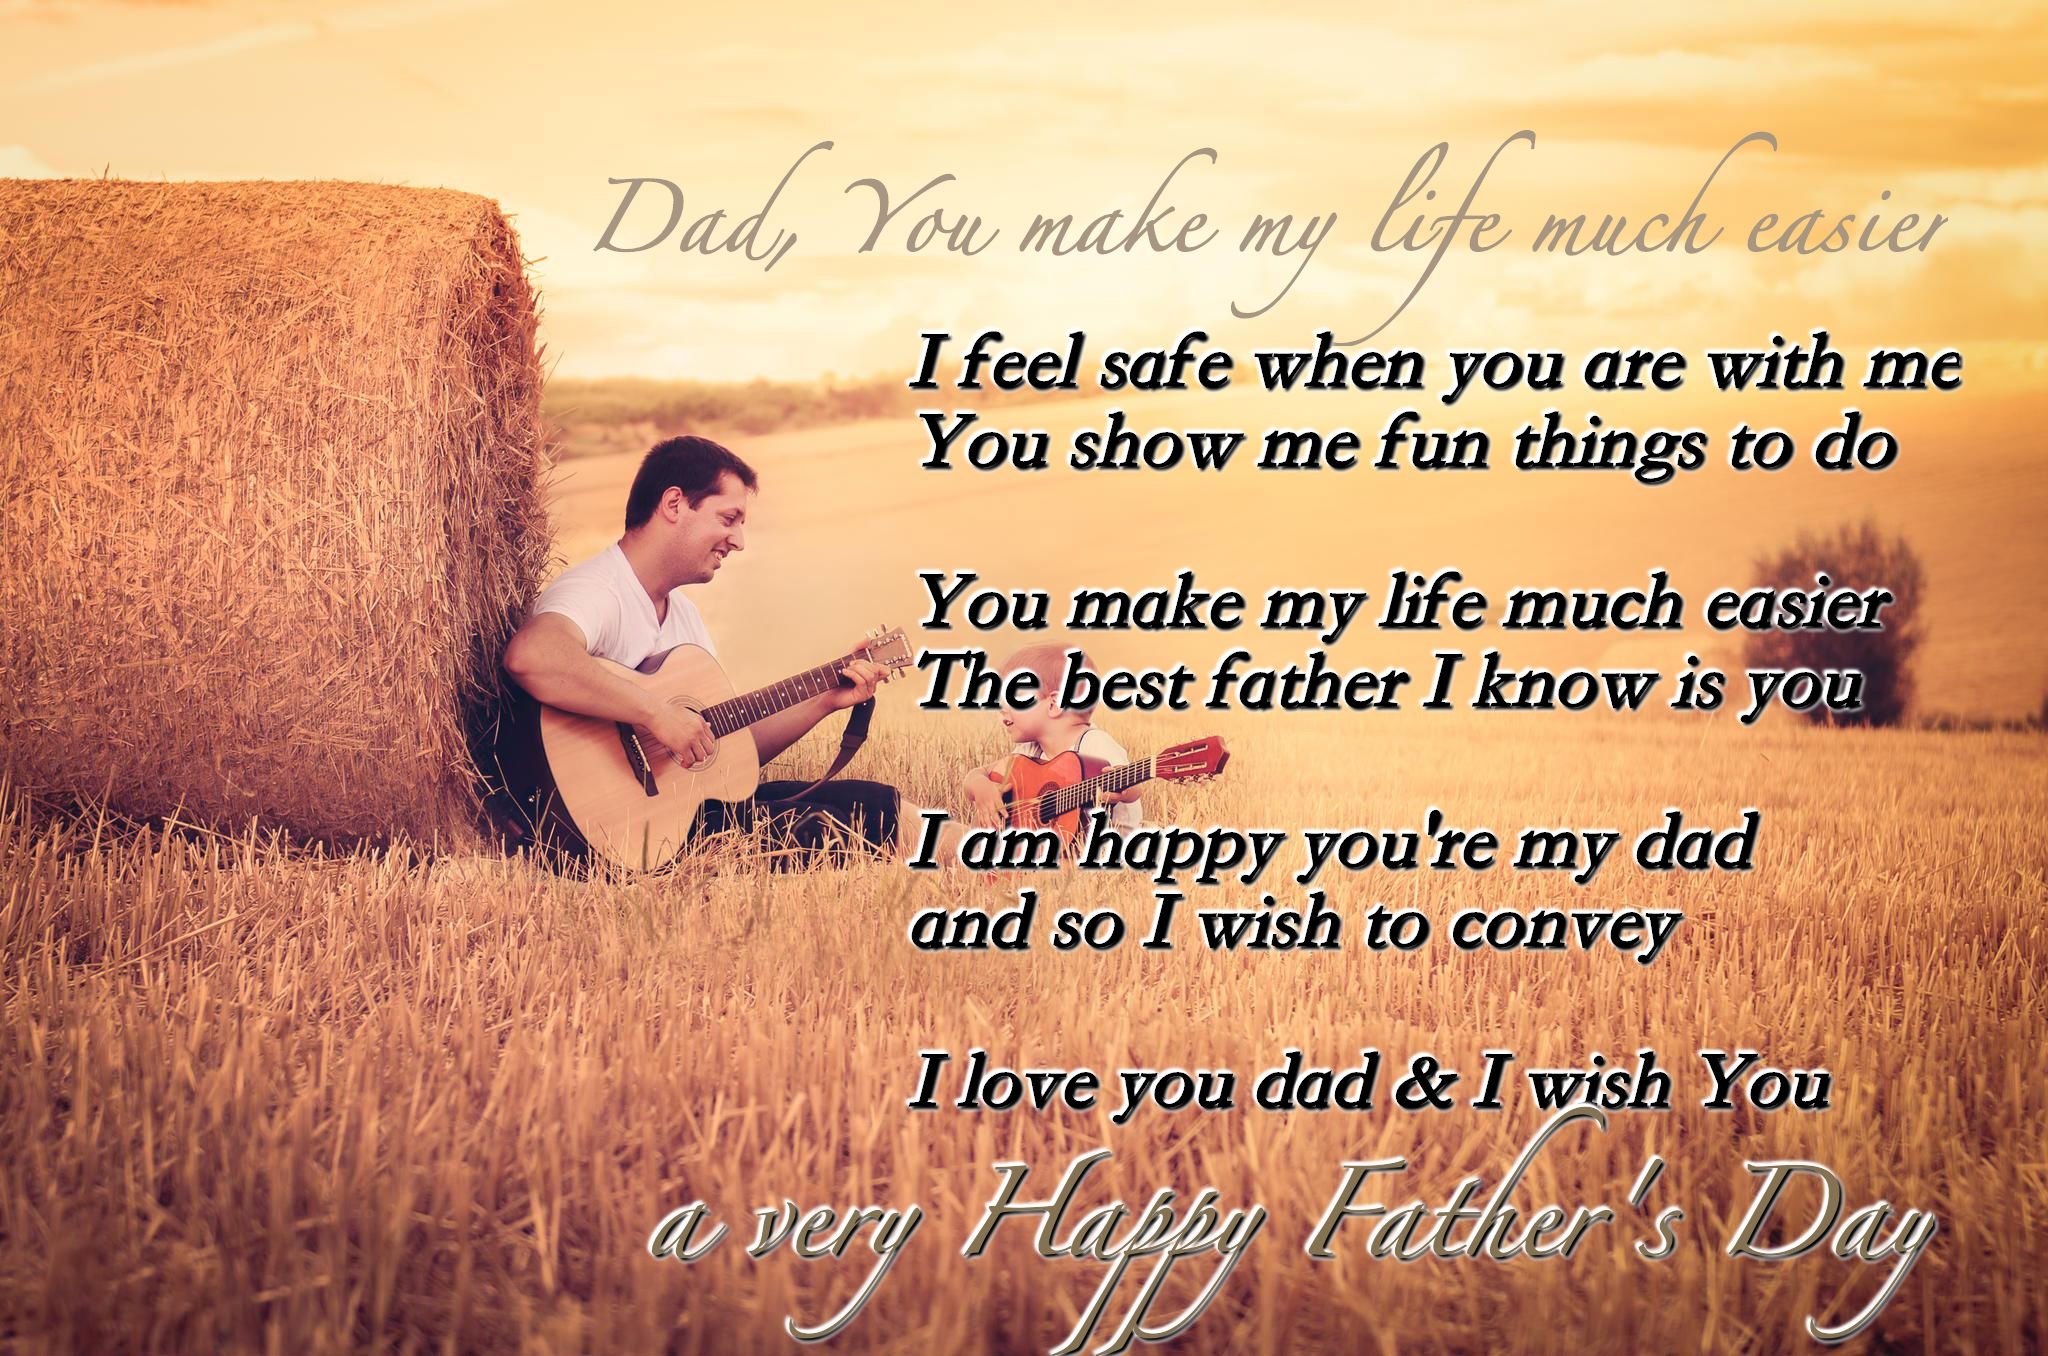 Best Fathers Day Images From Daughter and Son Relationship